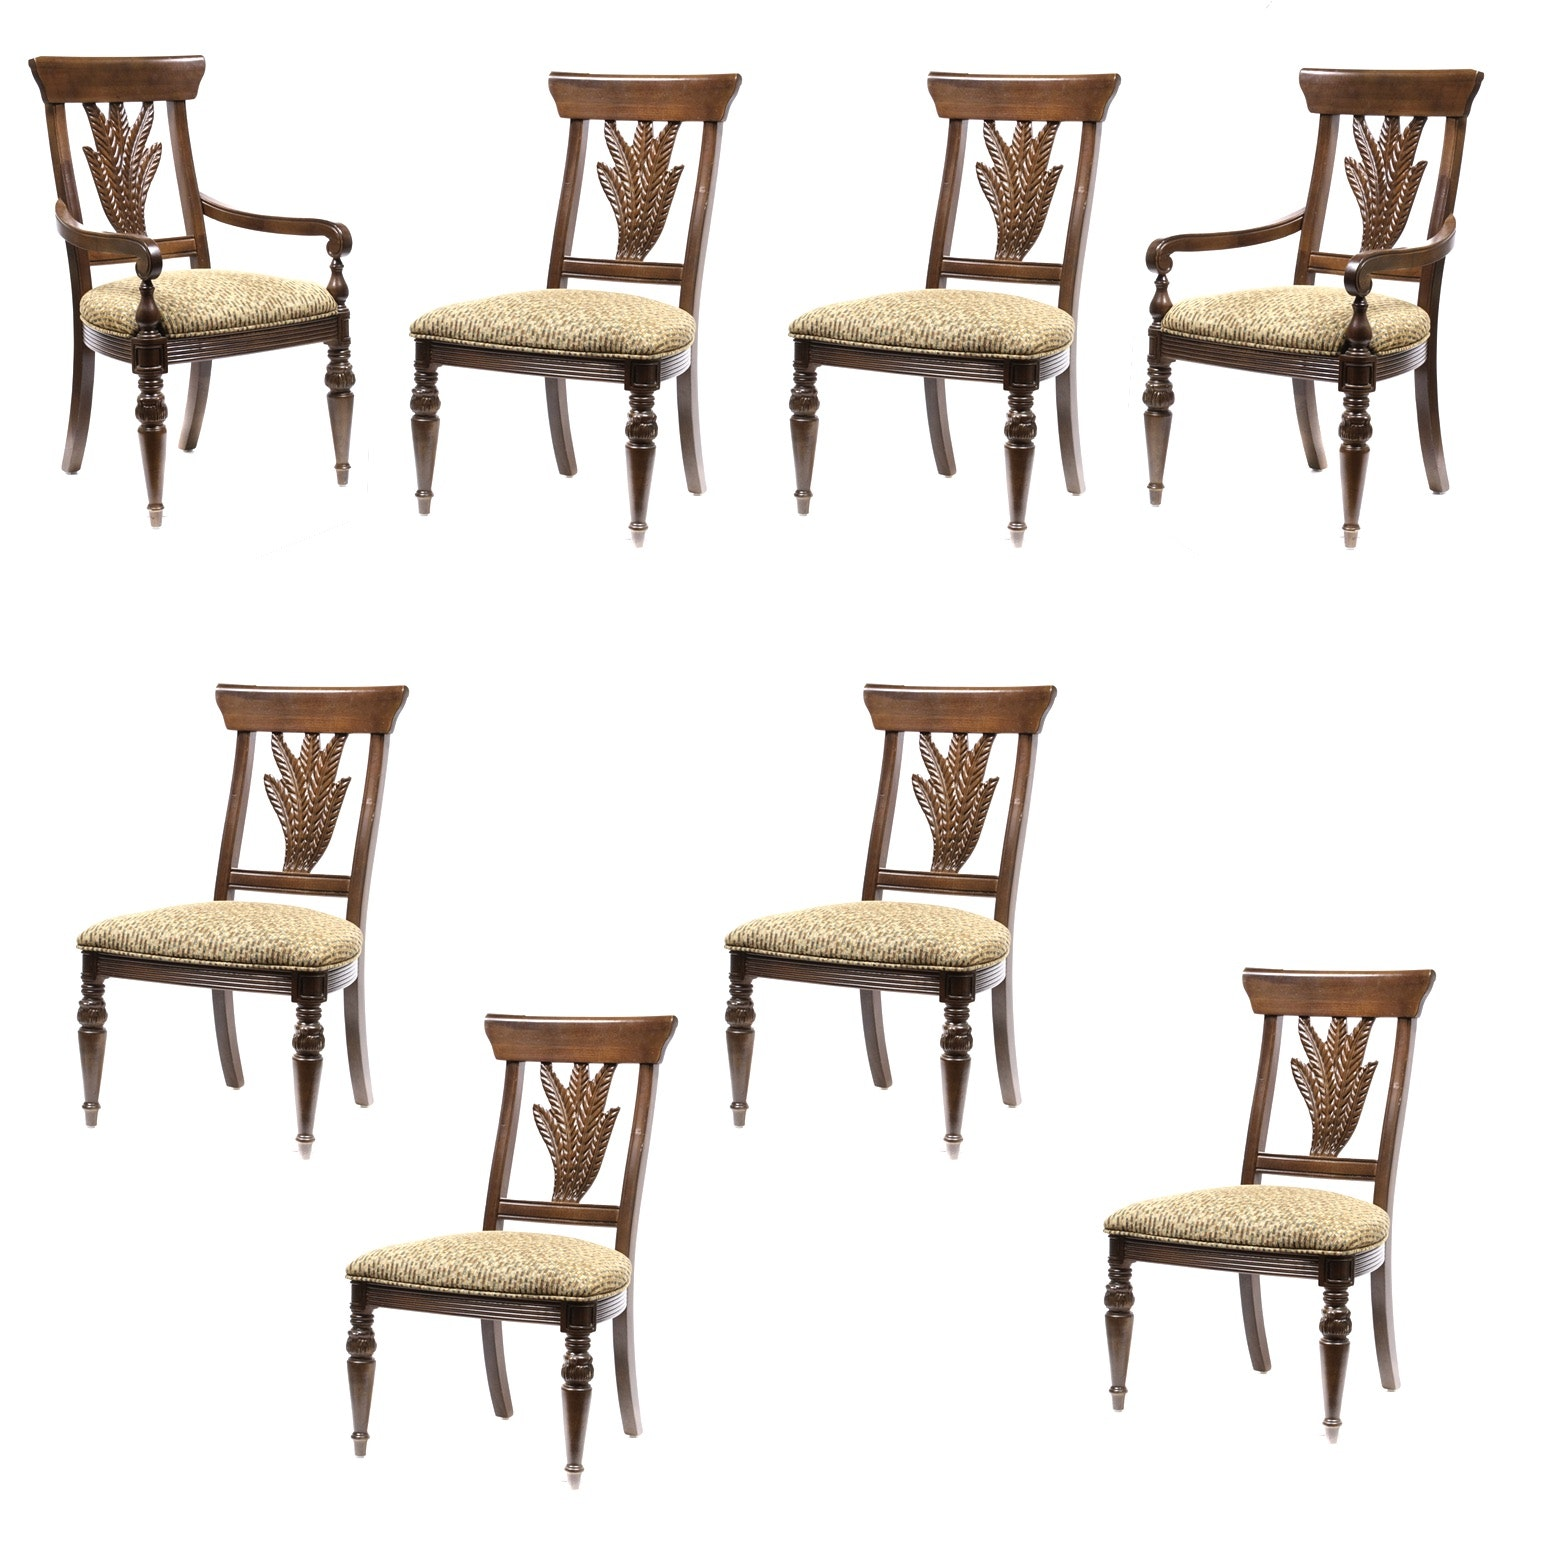 "Thomasville ""Ernest Hemingway"" Collection Dining Chairs"